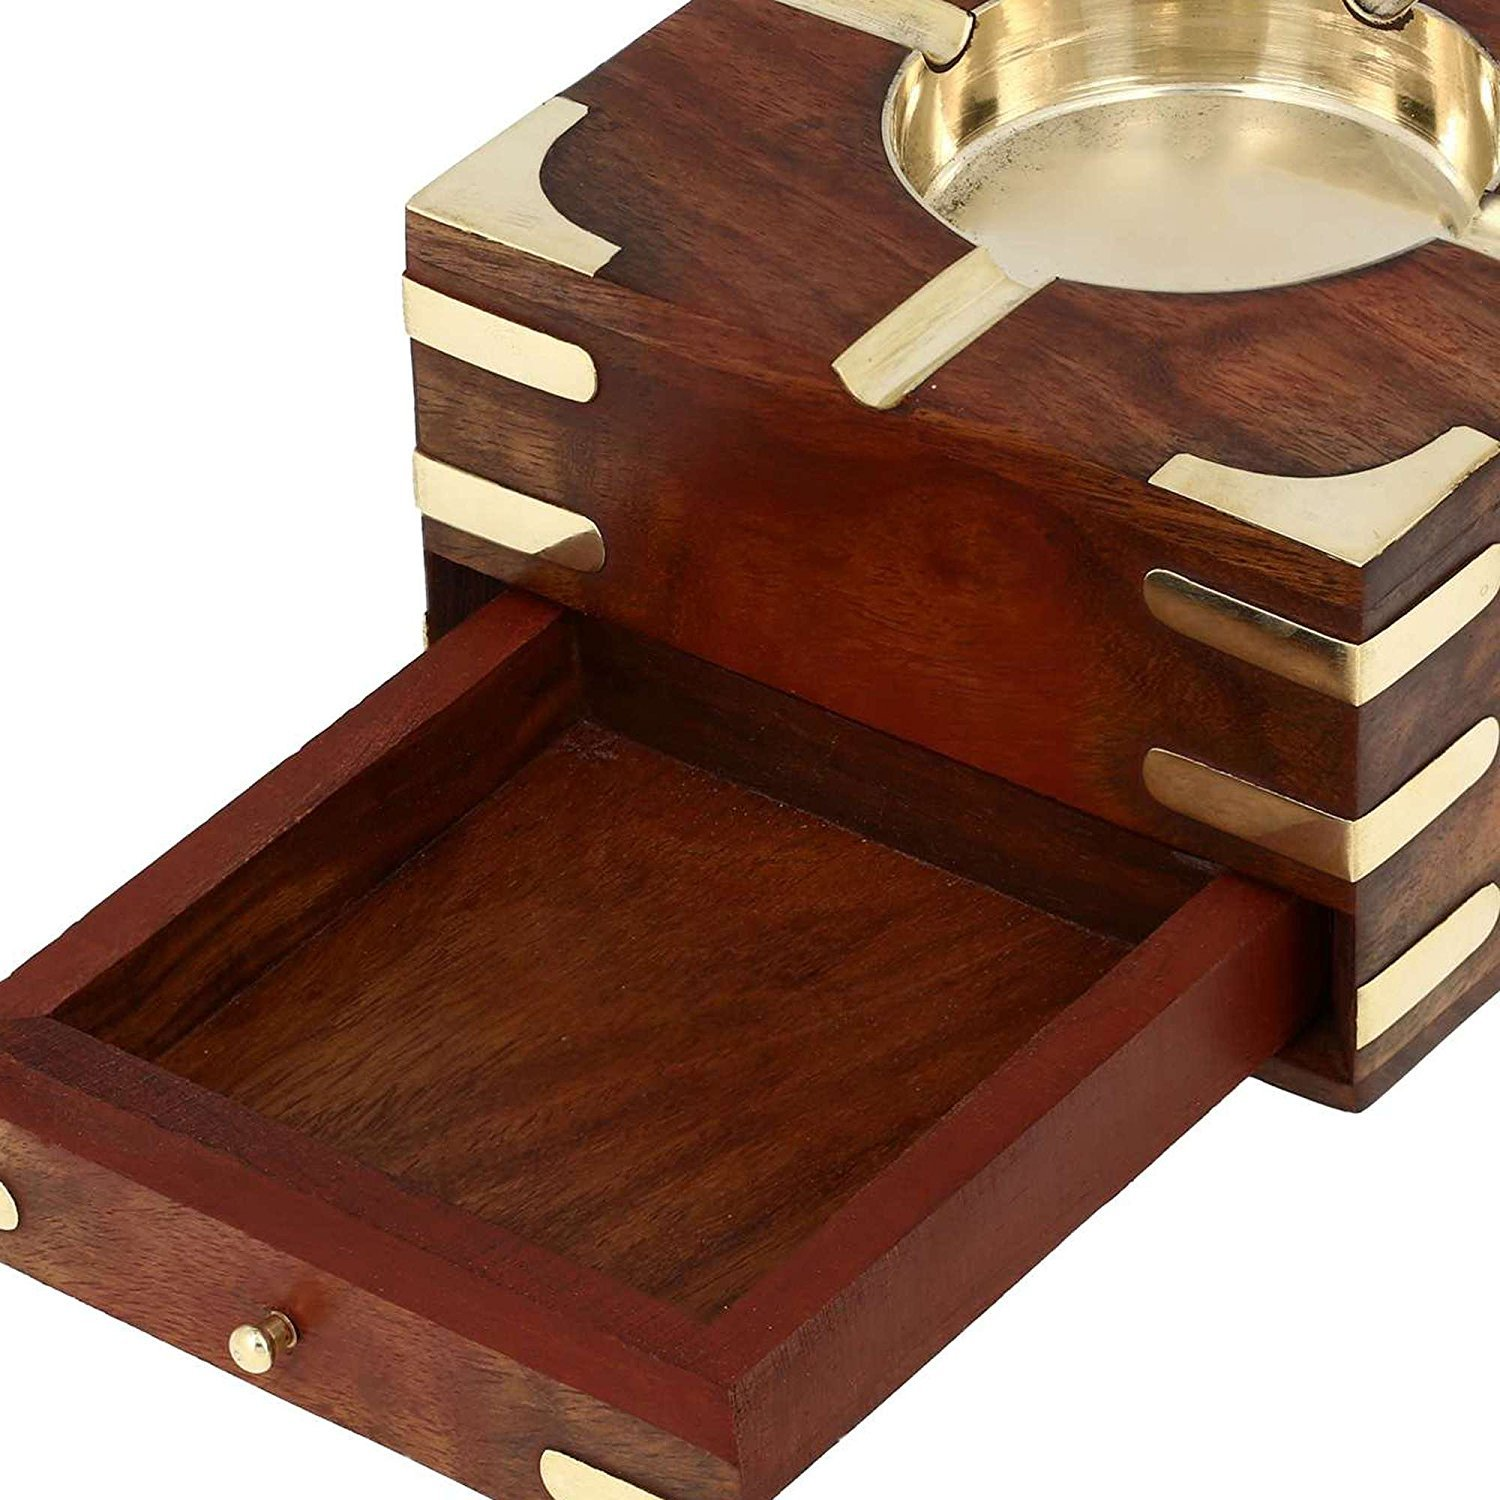 Tusejo Ashtray with Cigarette Storage Case Box Drawer